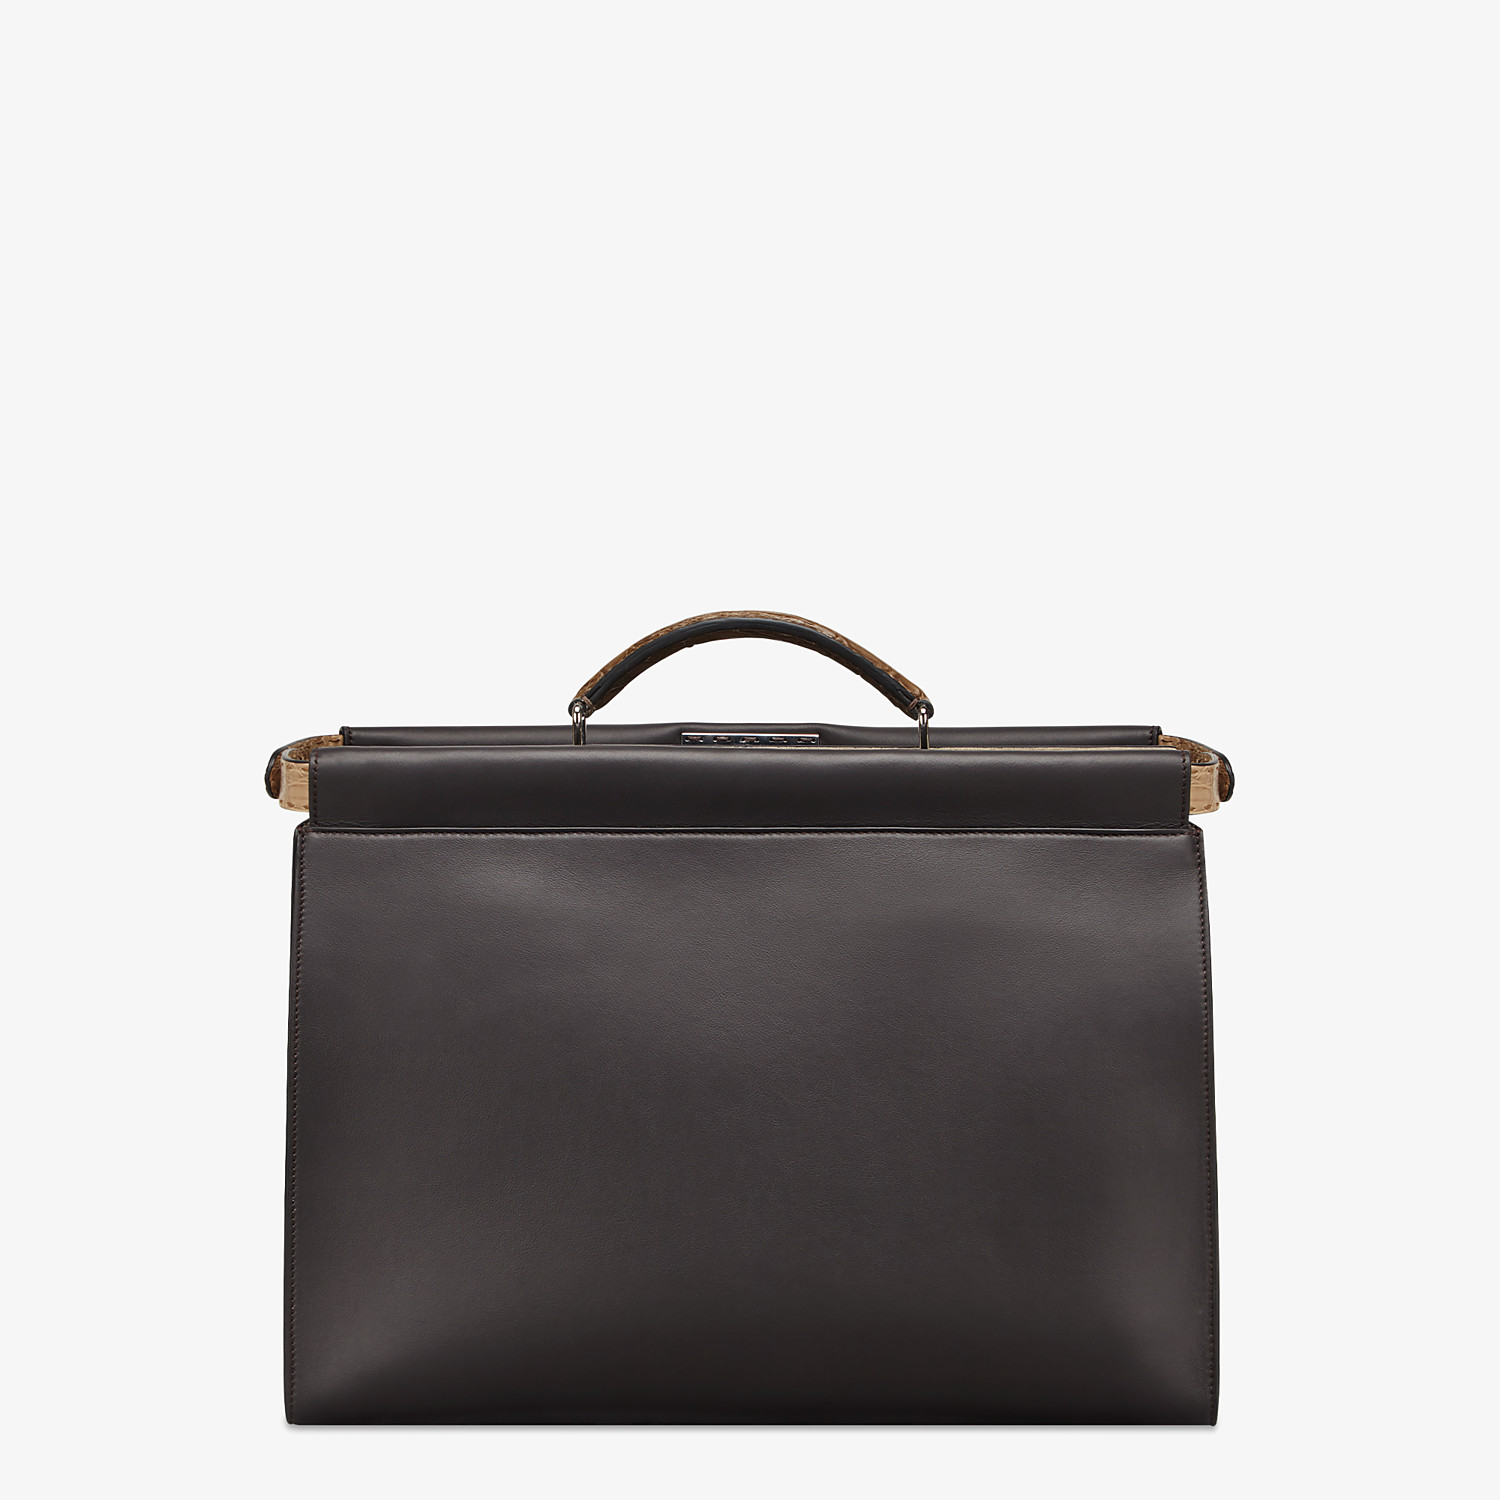 FENDI PEEKABOO ICONIC MEDIUM - Brown leather bag - view 3 detail